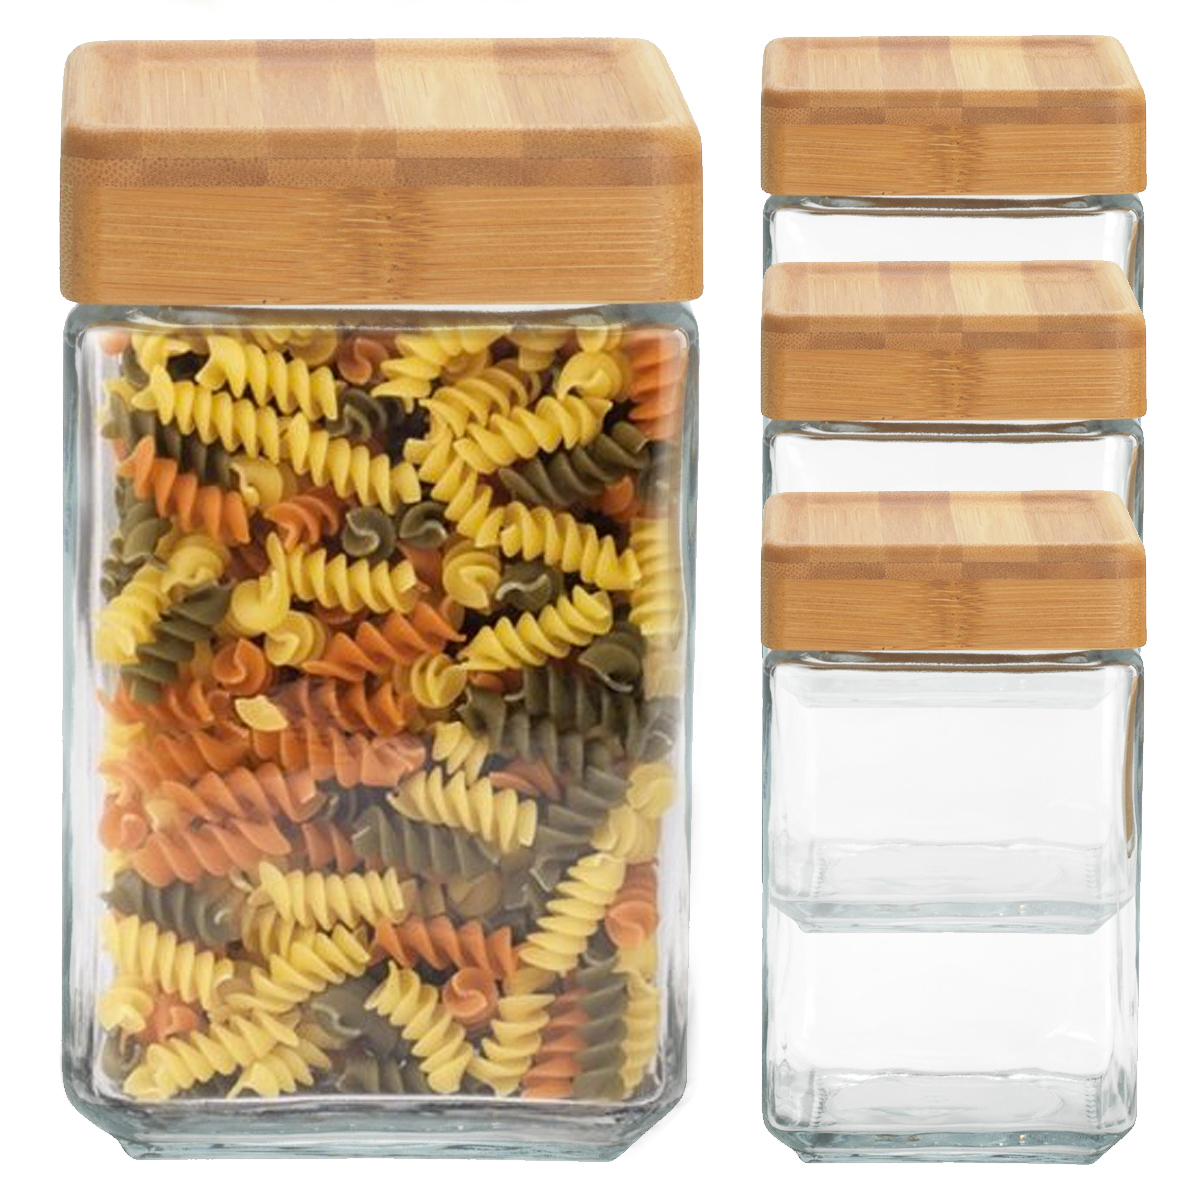 4 Anchor Hocking 48oz Glass Jars Container Bamboo Lid Airtight Seal Stackable Food Storage Saver